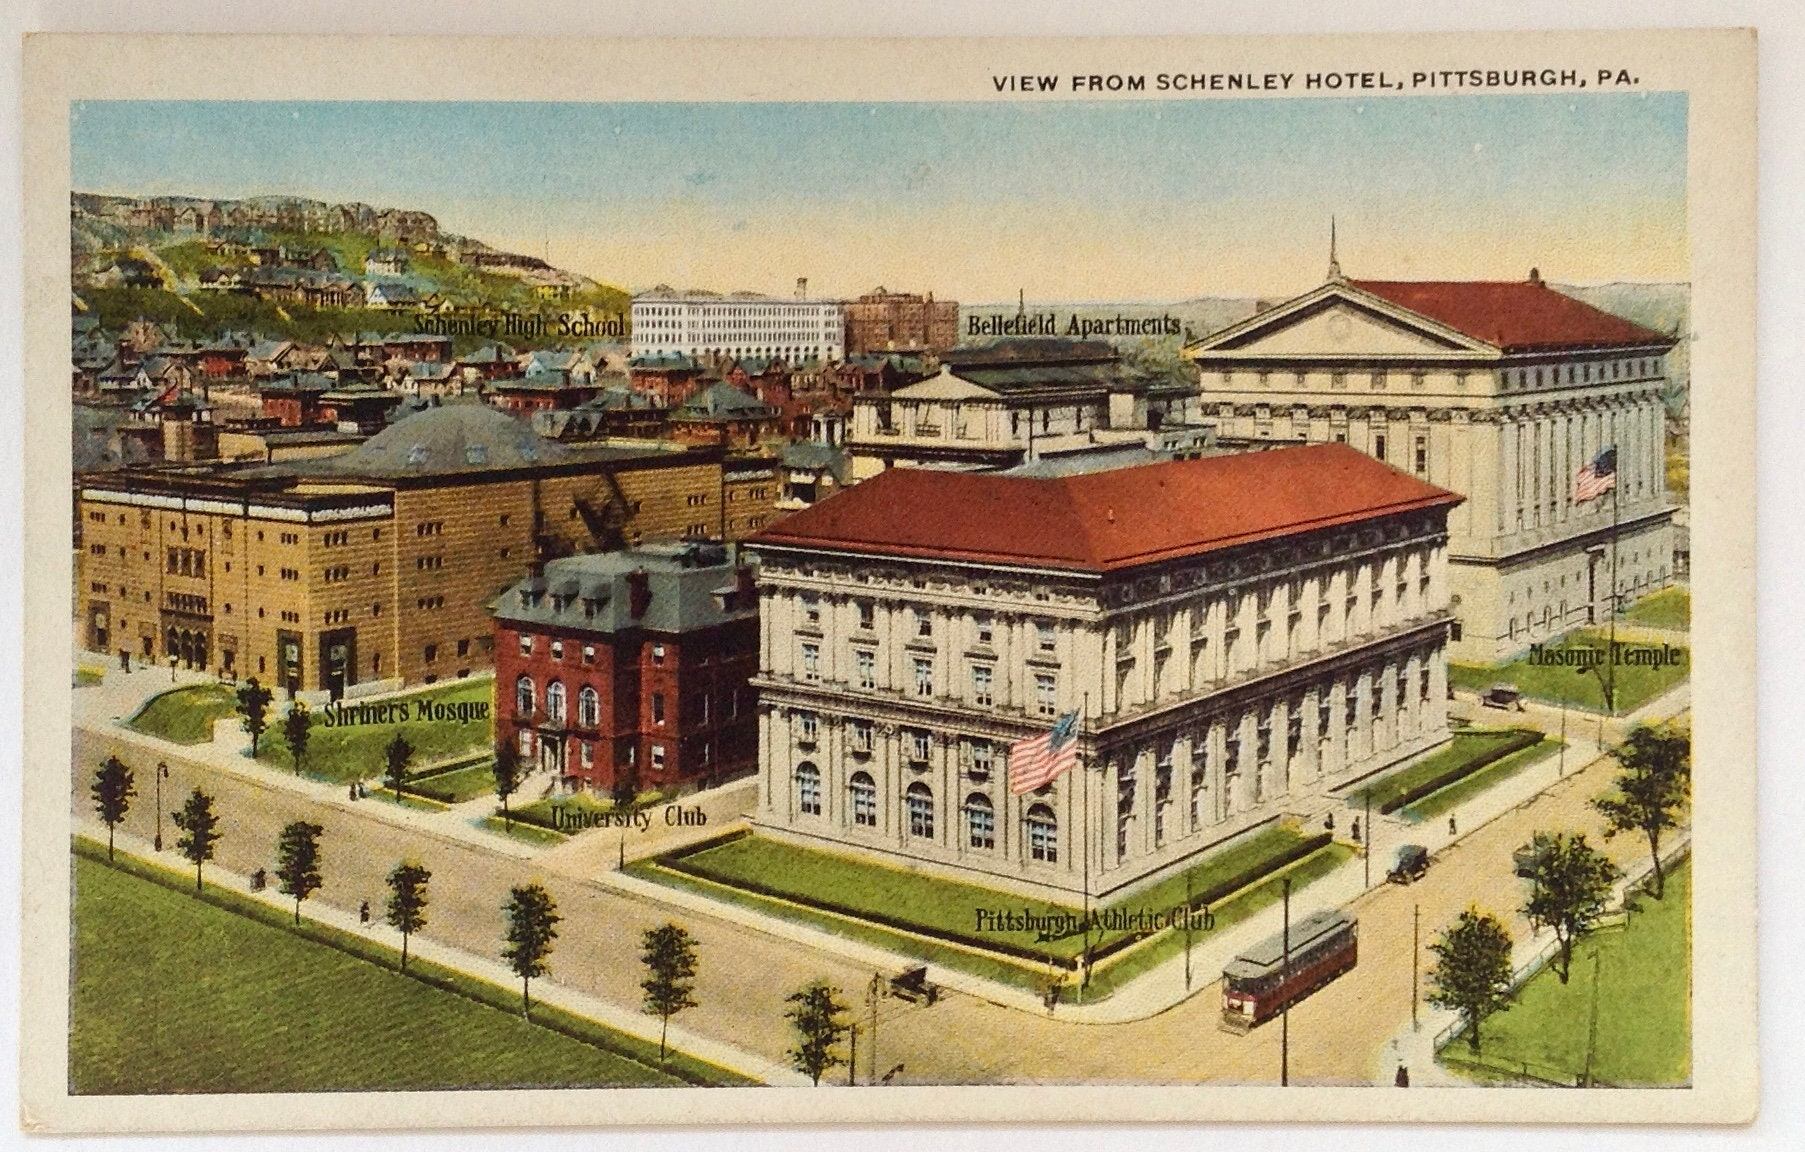 Pittsburgh Vintage Postcard View from Schenley Hotel | Etsy